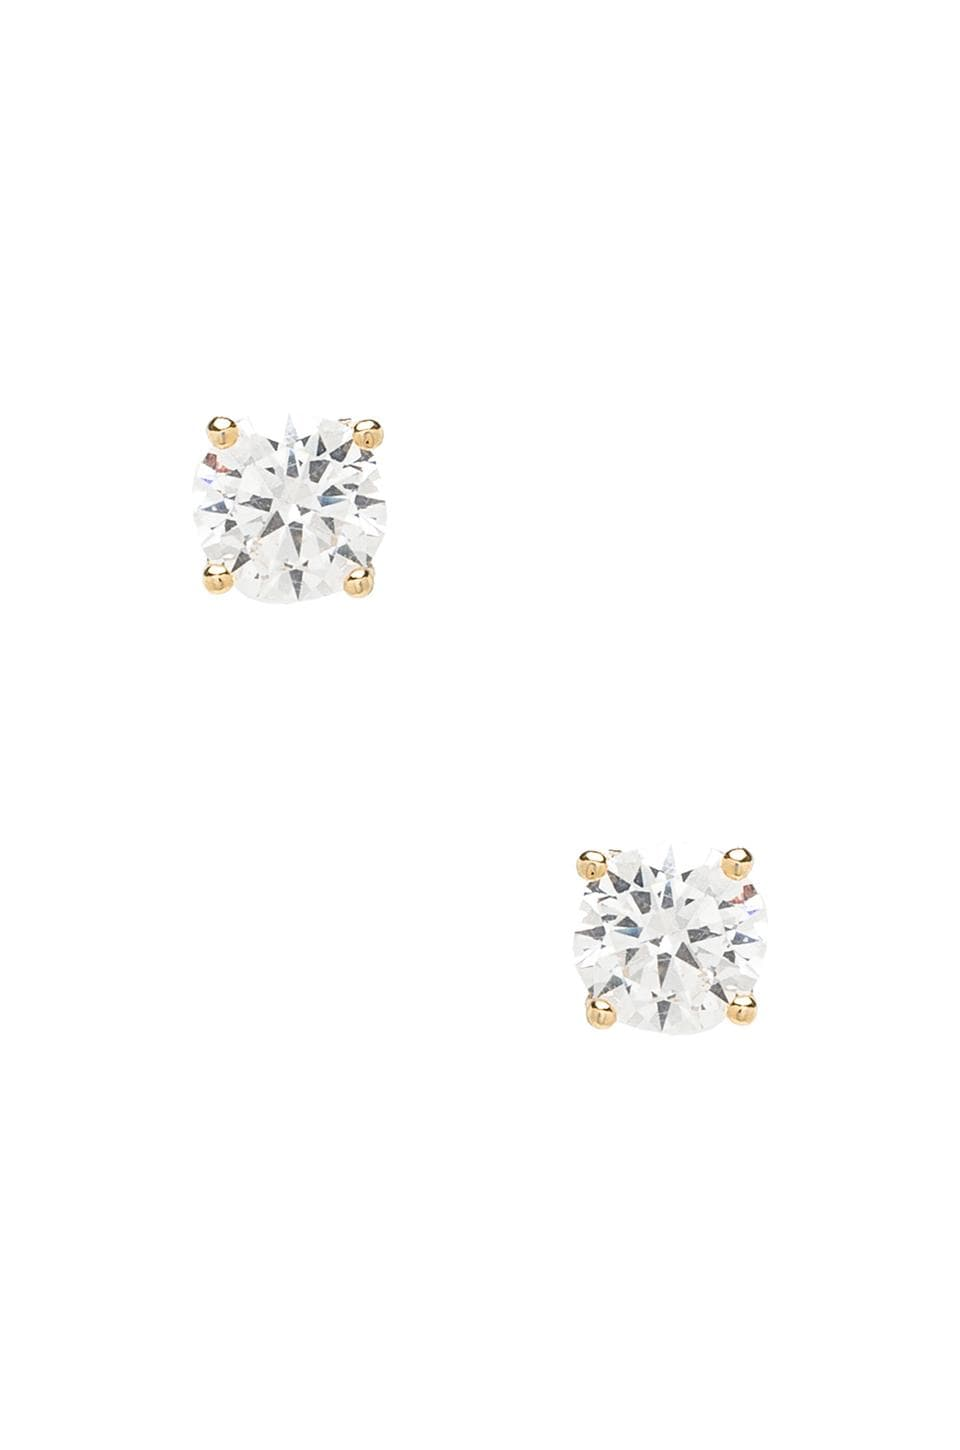 Lisa Freede 2CT Round Cut Stud Earrings in Yellow Gold